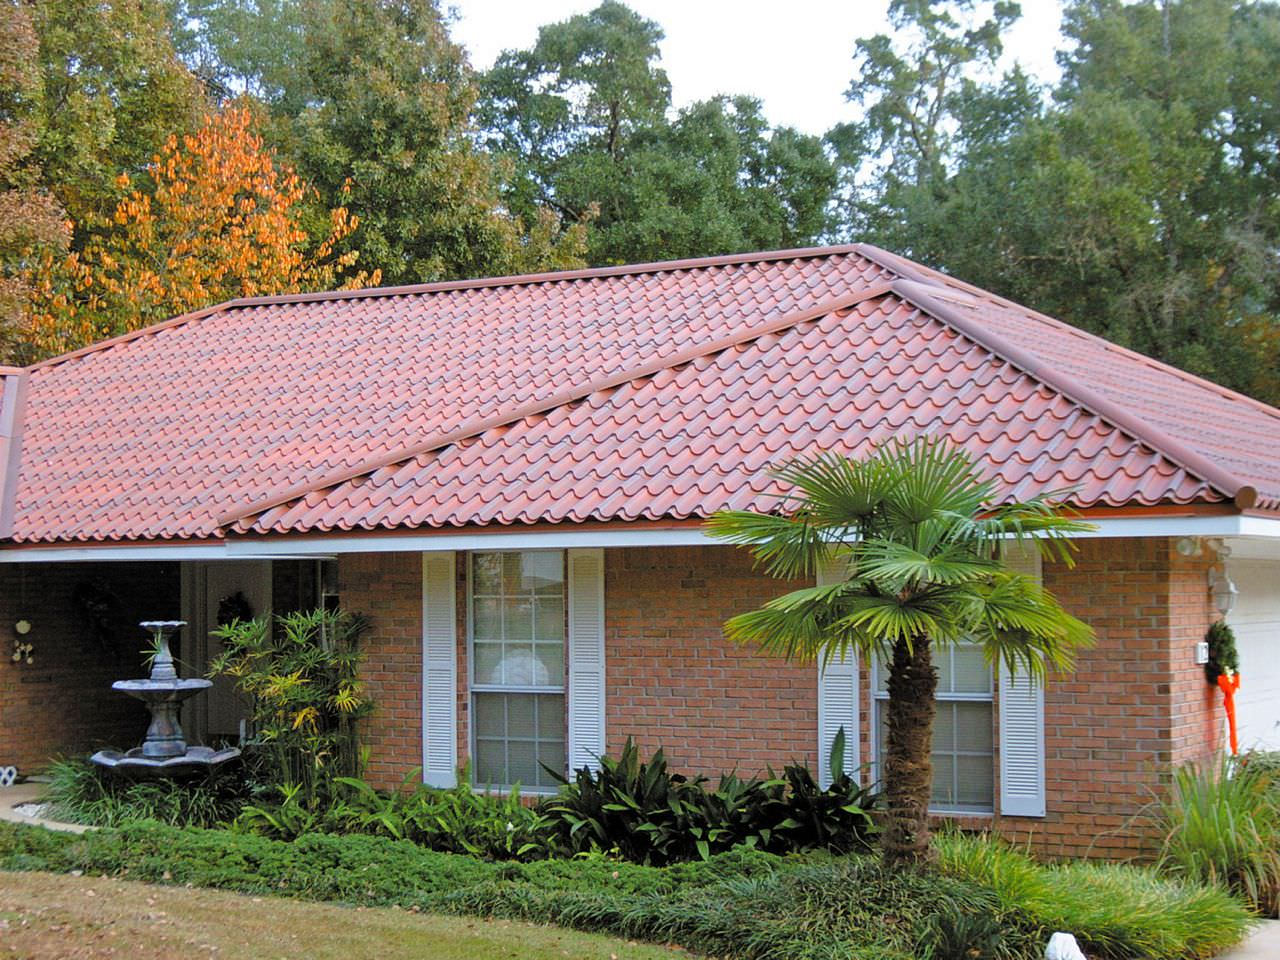 Grandetile Tile Roofing Metal Solutions Inc